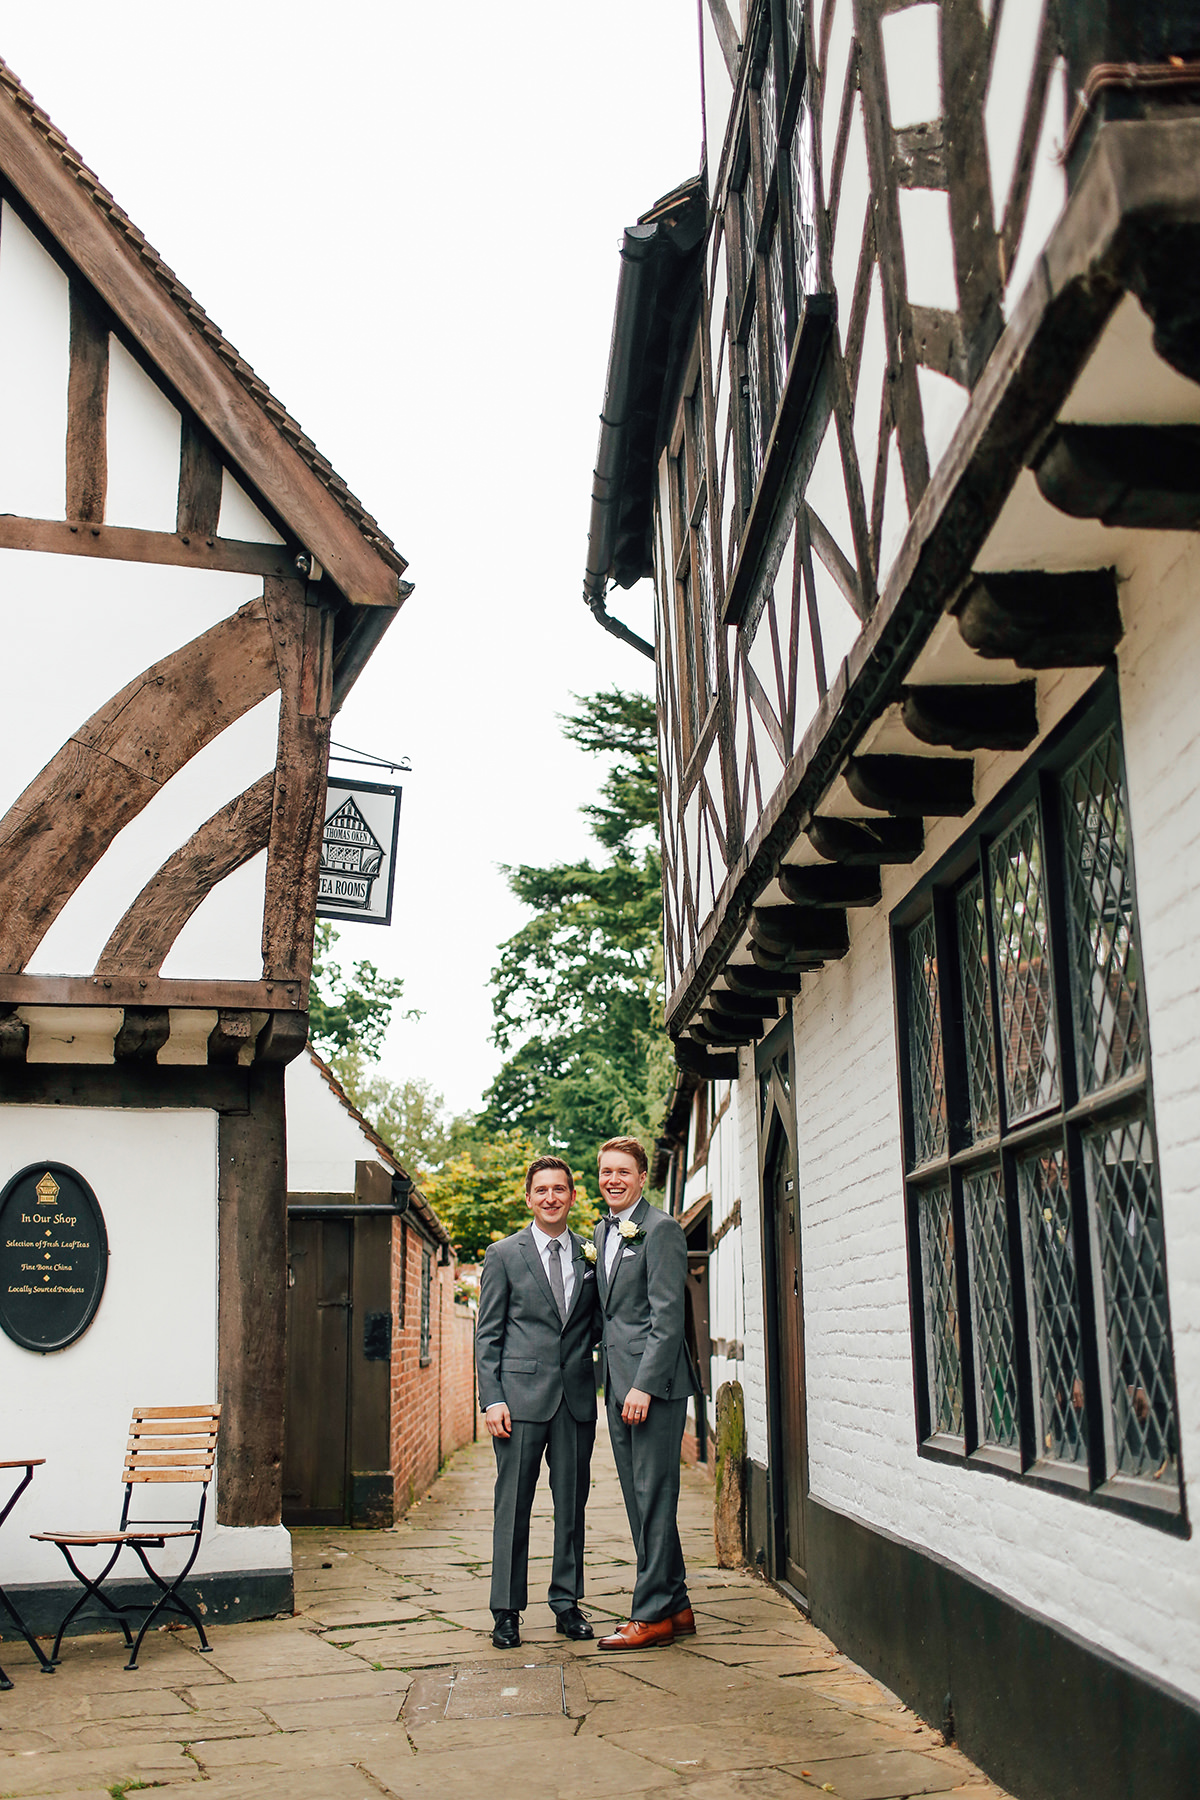 Creative and Natural Photography Gay Wedding Photography Manchester and Stockport Wedding Photographer Leamington Spa Wedding Photography Civil Partnership